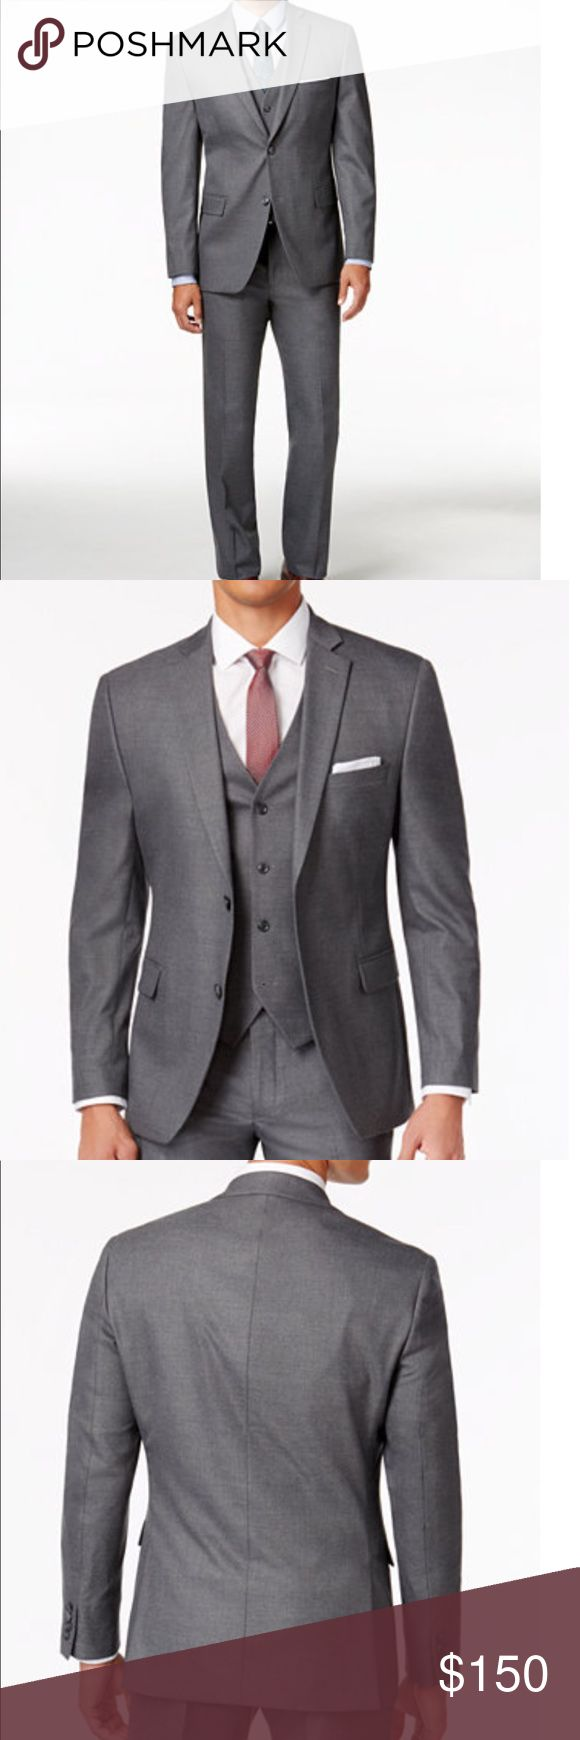 Alfani | Grey Solid Suit | Slim-fit Traveler's Grey Solid Slim-fit Suit  Jacket: Notched lapel, 2button closure, 4button cuffs, 2 front flap pockets;left chest pocket; 6 interior pockets, side vents, fully lined, wrinkle-resistant stretch fabric, cut w/ a narrower point to point shoulder measurement, higher armhole & trimmer thru the chest and waist, shell:polyester/rayon/lyrca, lining: polyester Pants:  French fly & button closure, quarter top pockets, flat front, partially lined, finished…